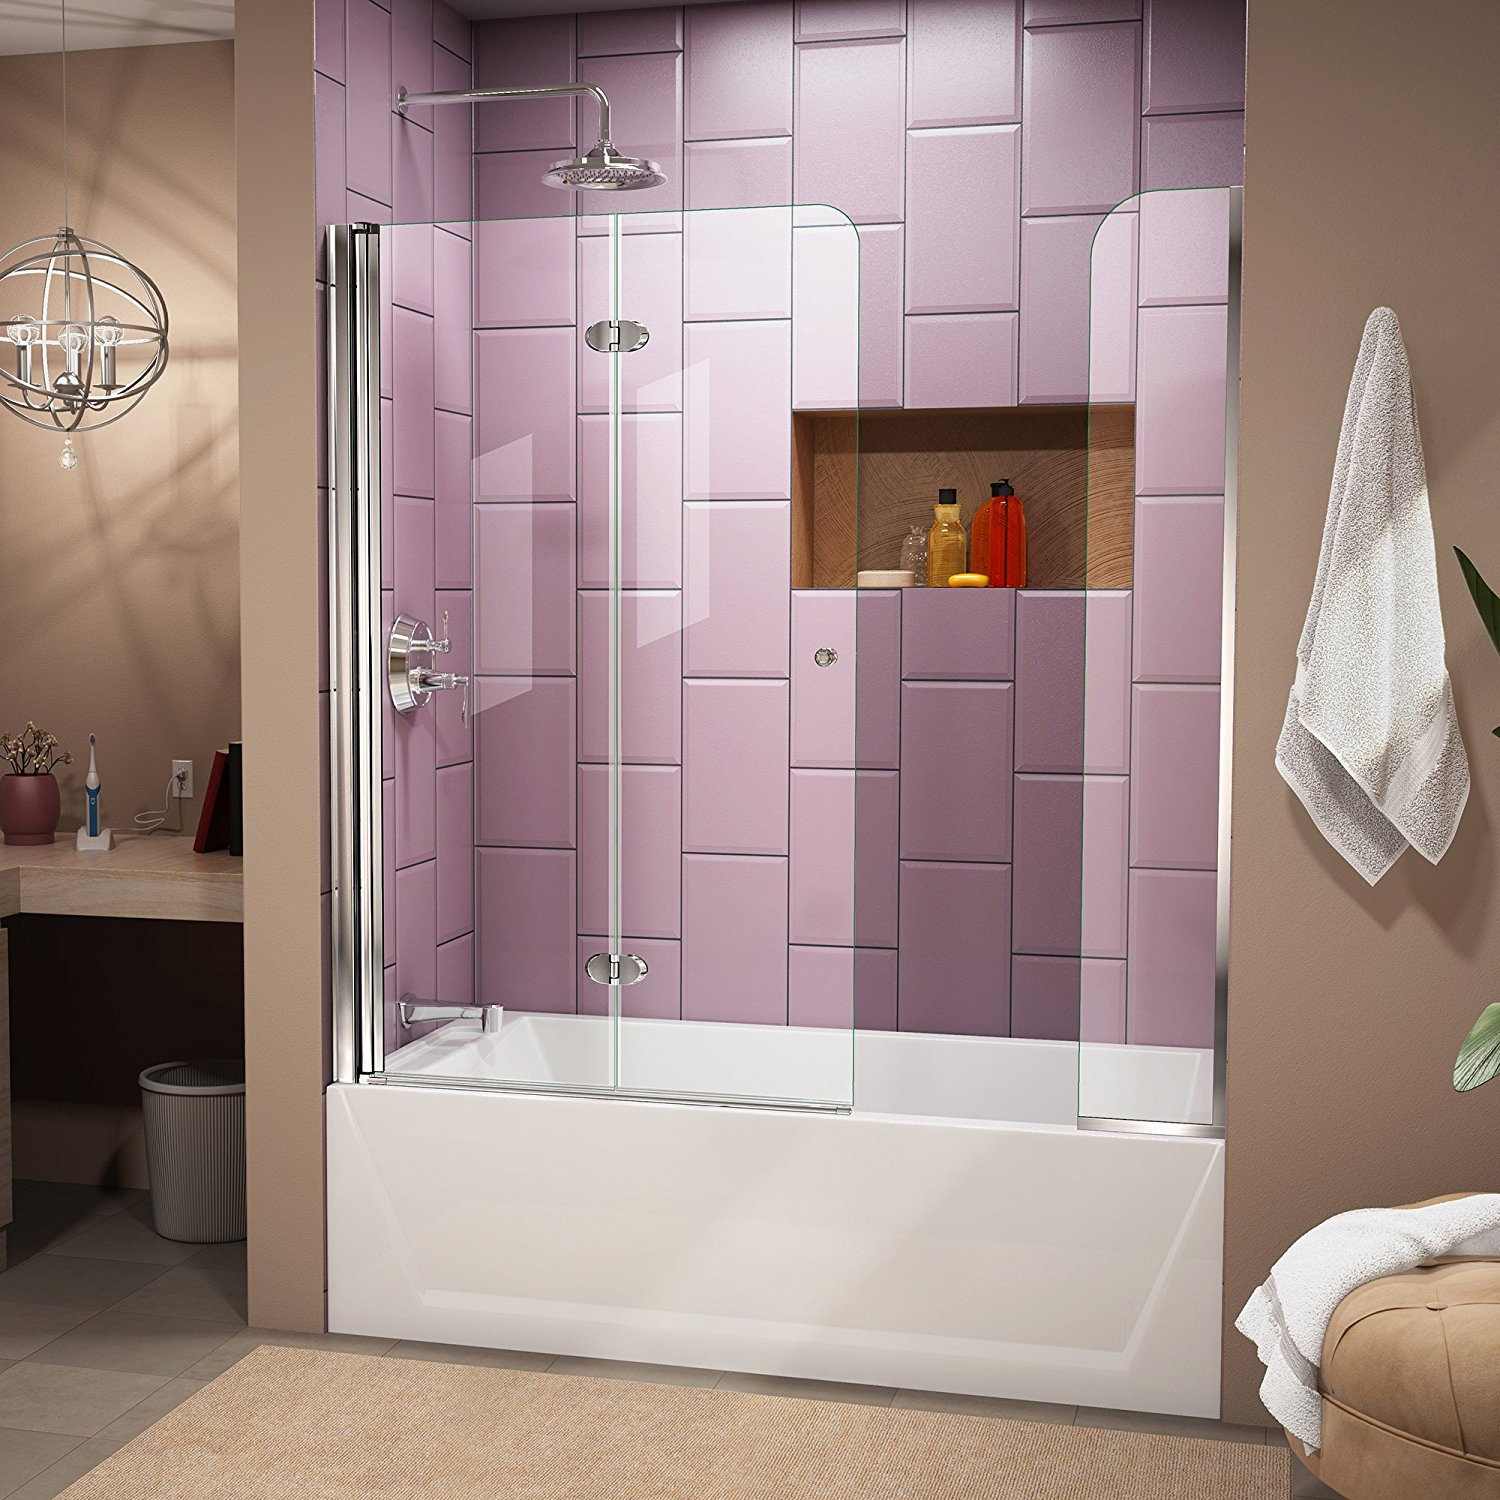 Top 10 Best Shower Doors In 2019 Top Best Pro Reviewe